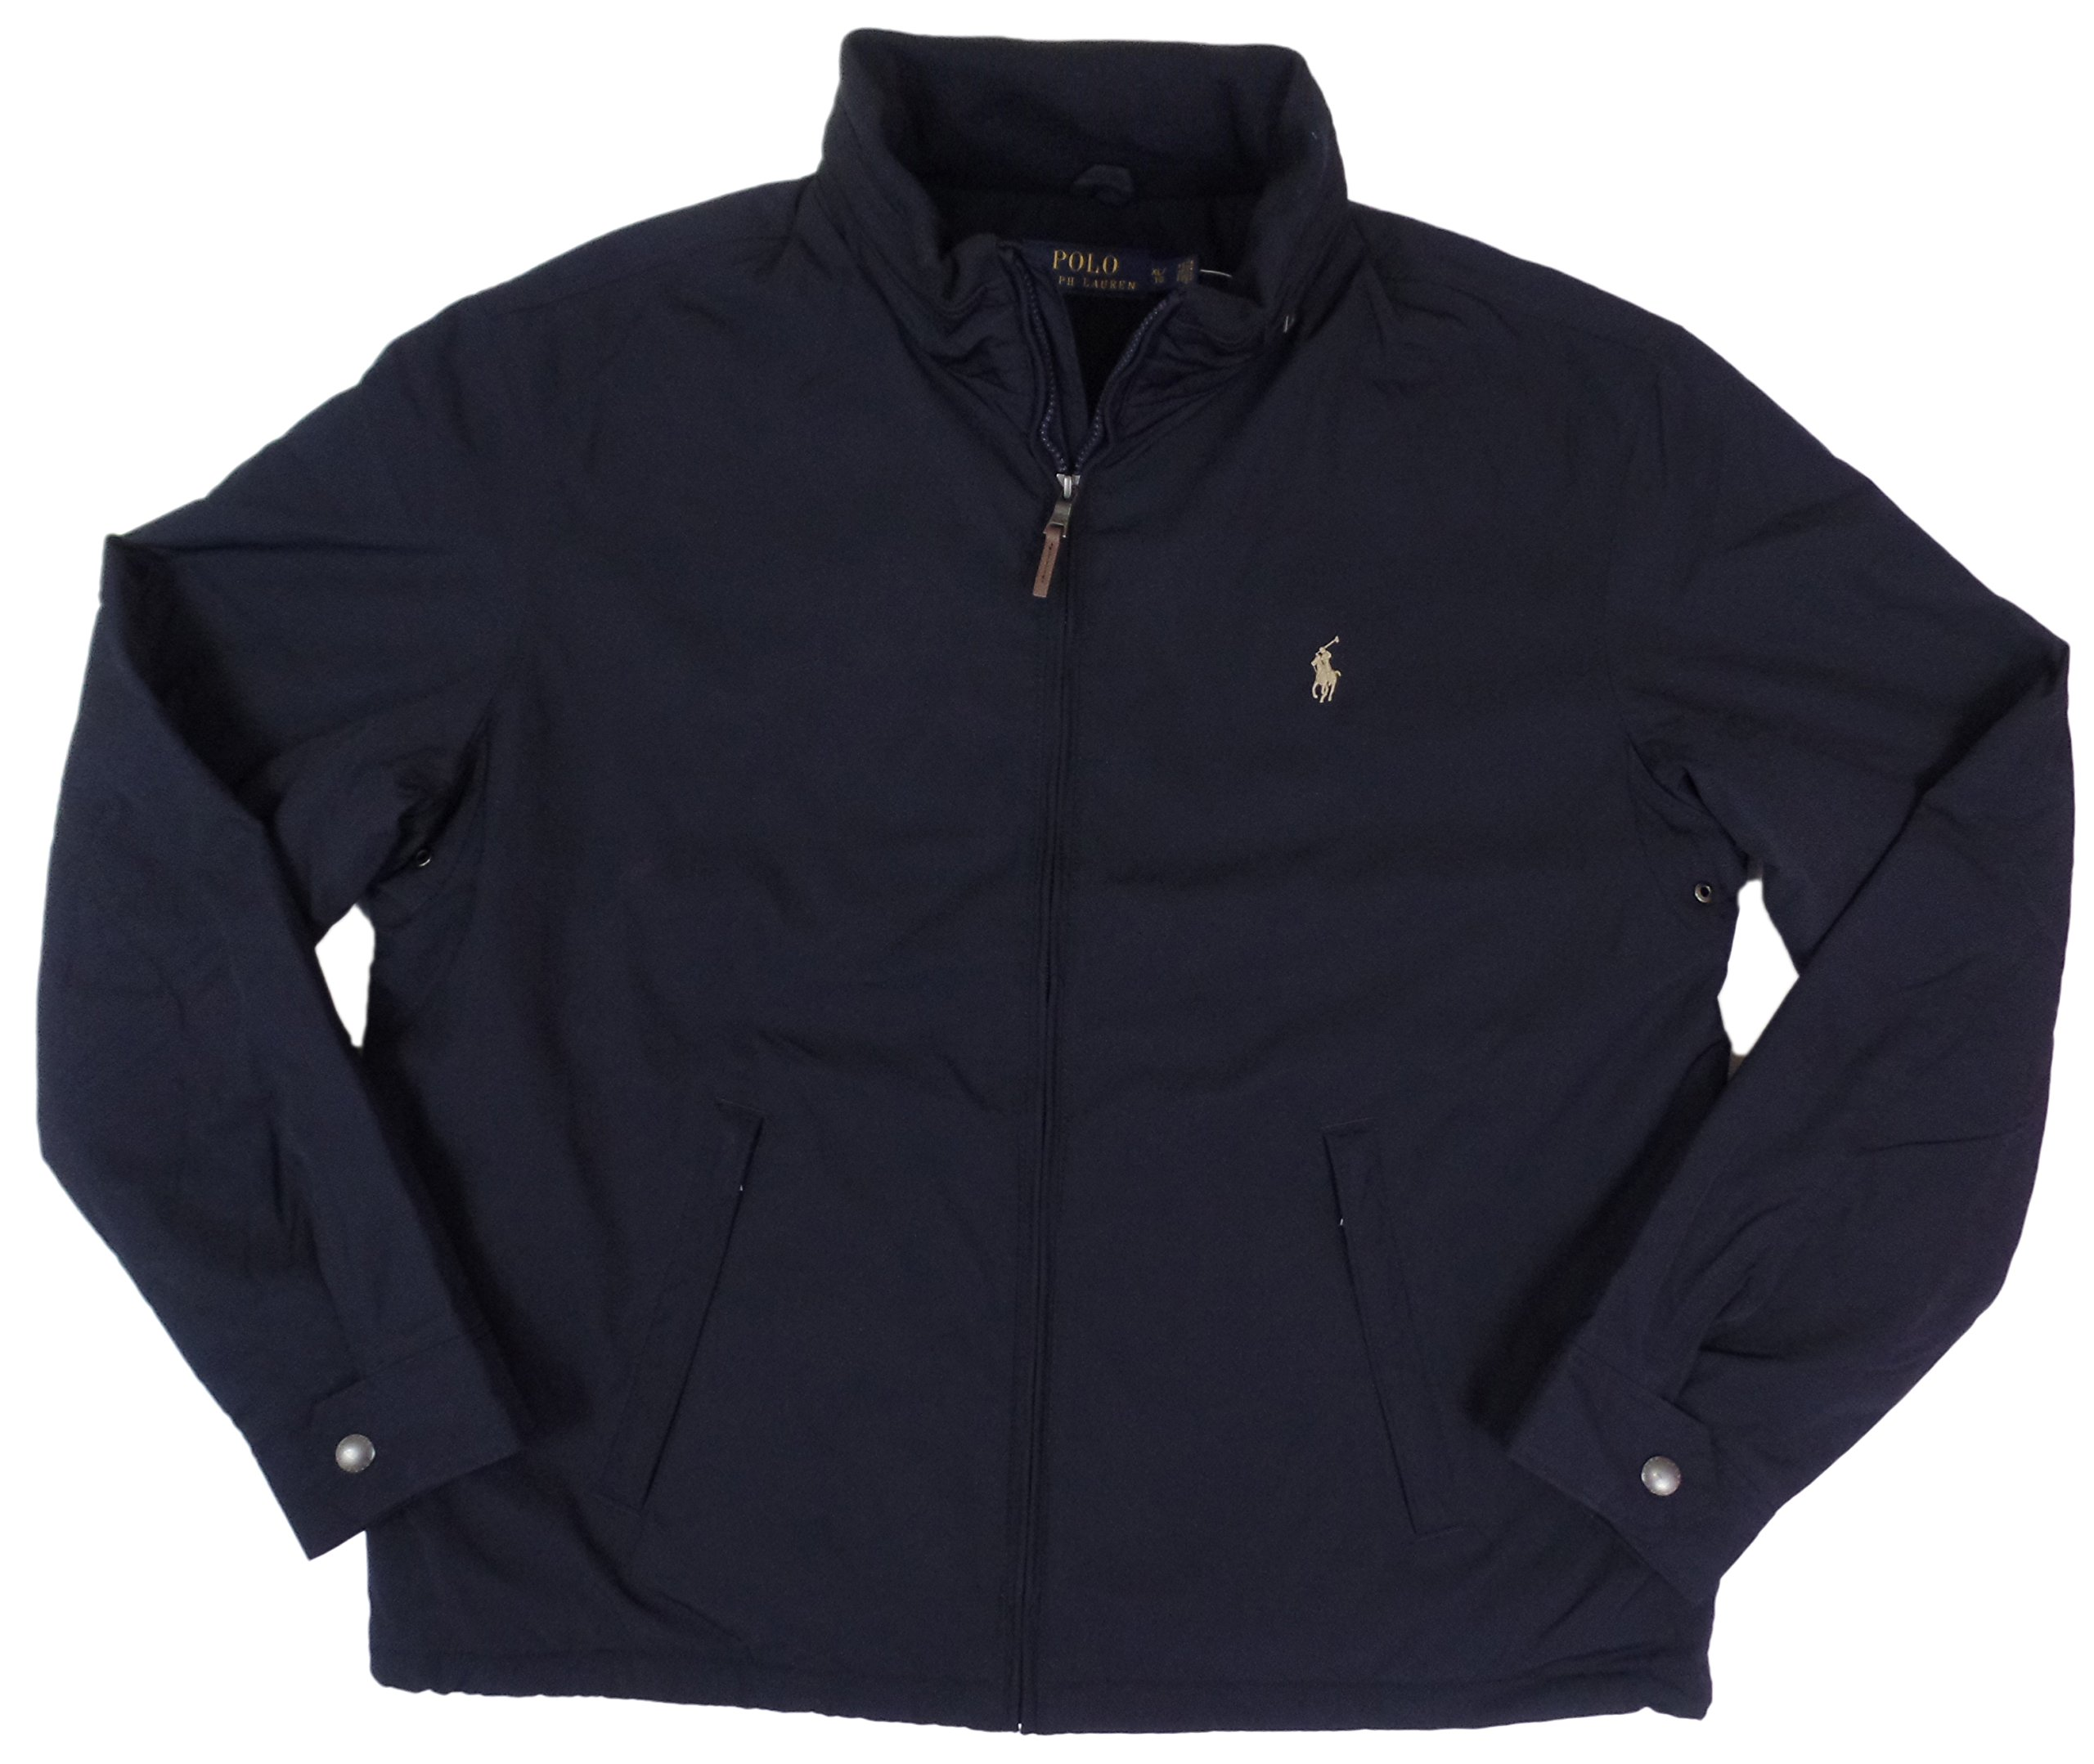 Polo Ralph Lauren Mens Perry Lined Winter Jacket (XLT, Aviator Navy) by Polo Ralph Lauren